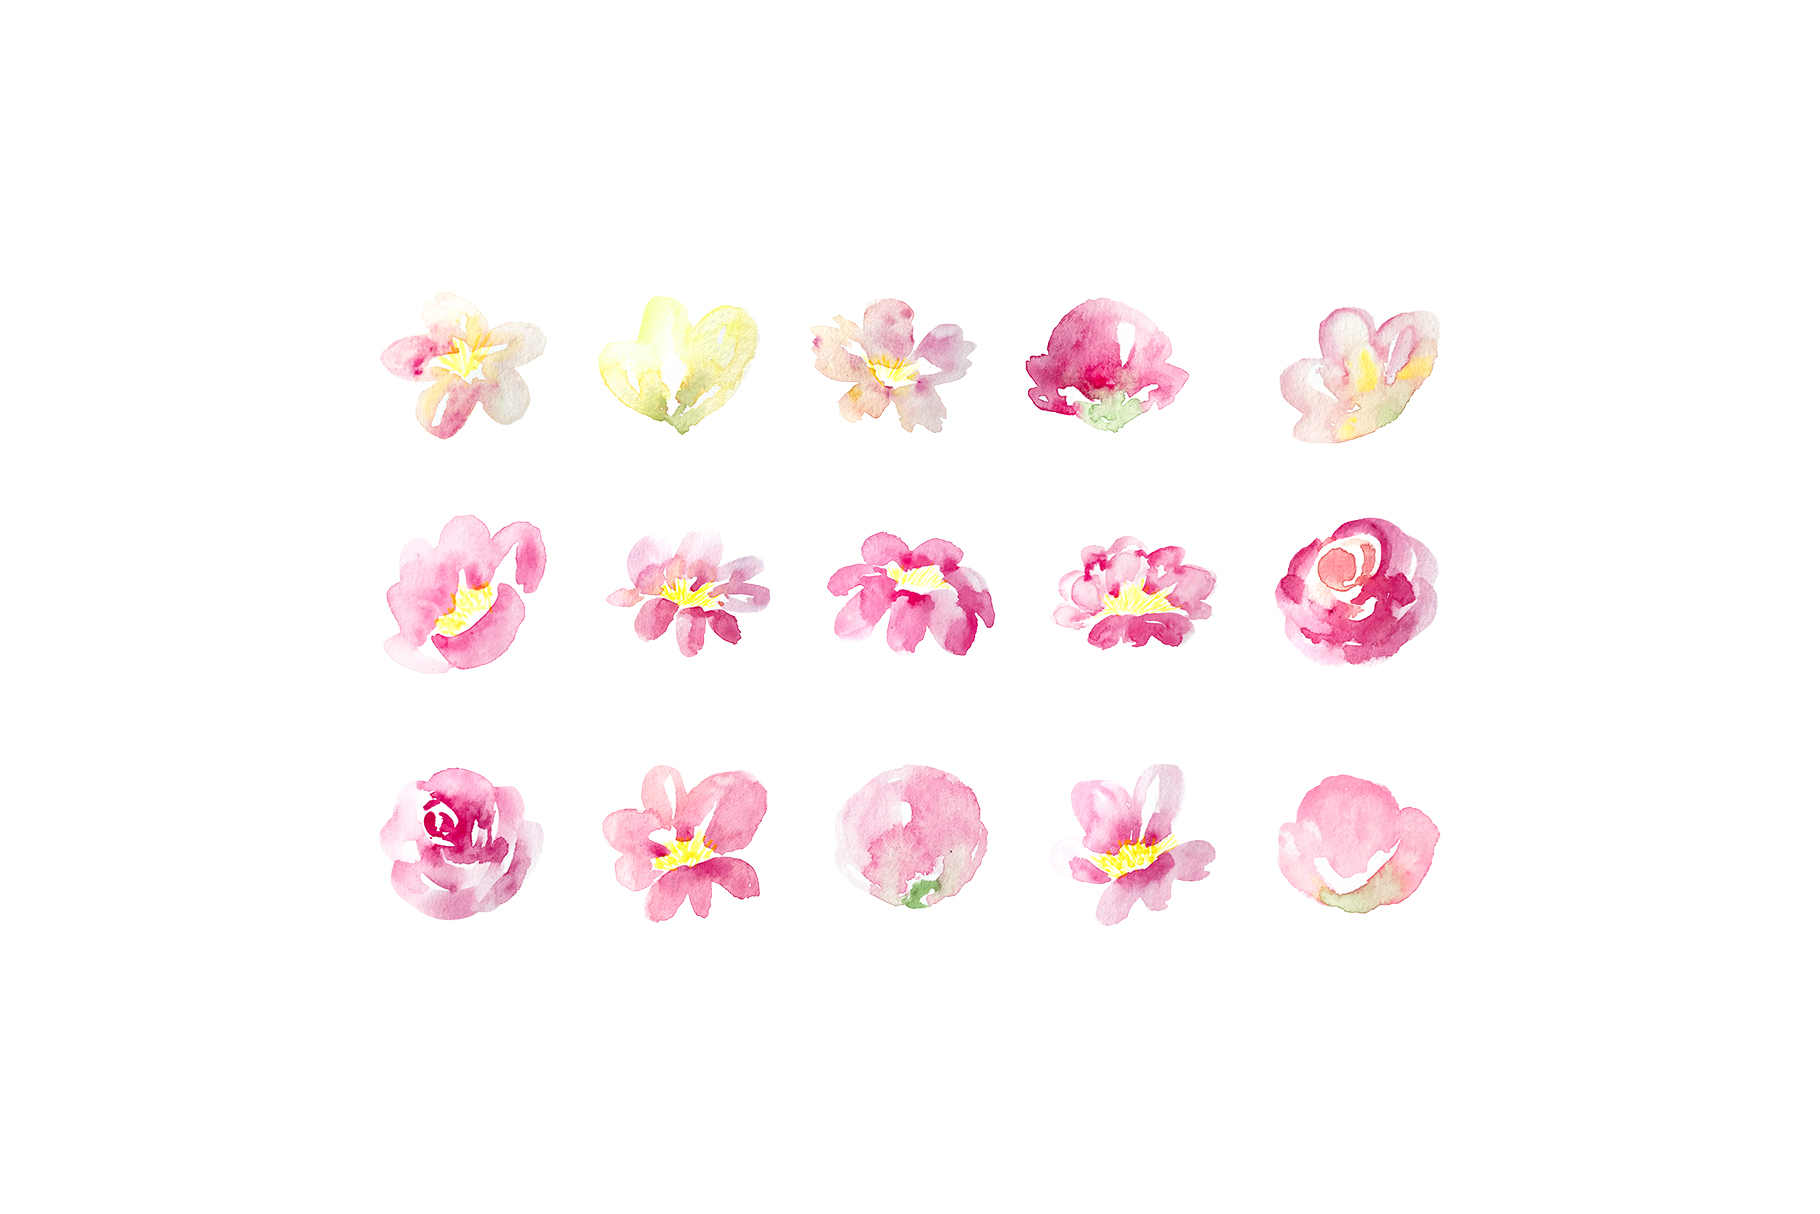 Pastel watercolor spring floral illustrations example image 3